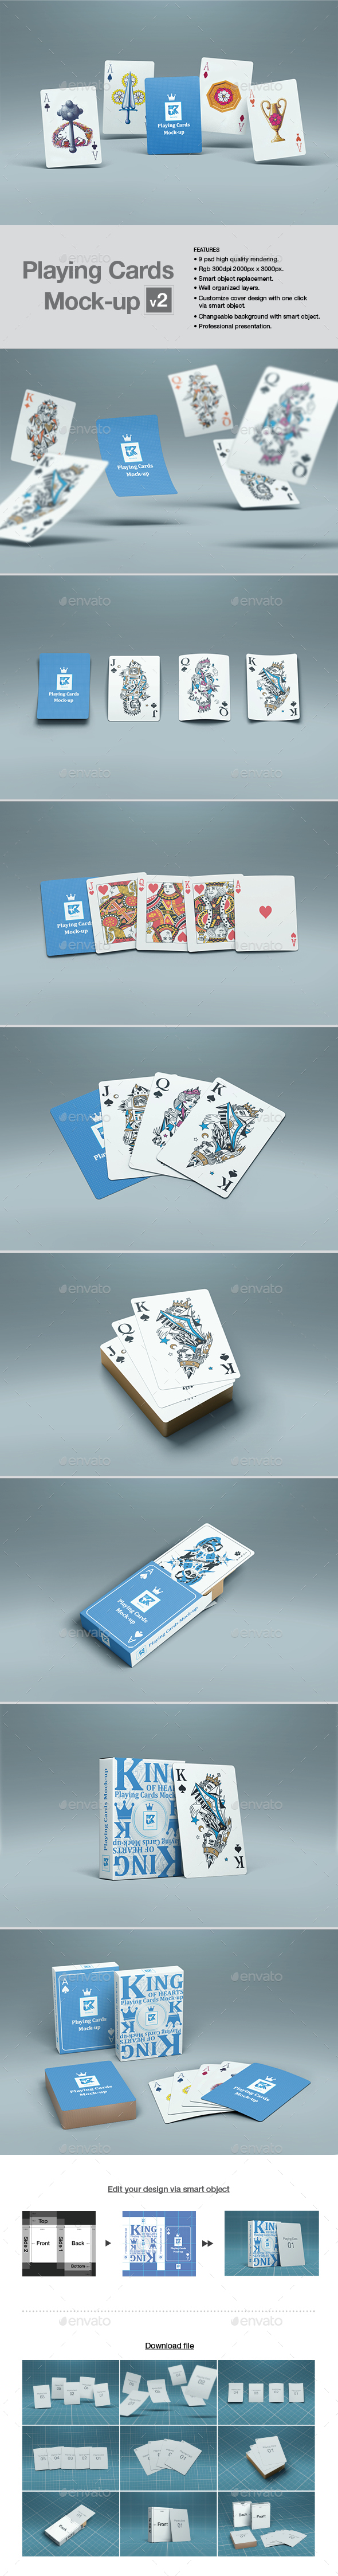 Playing Cards Mock-up v2 - Print Product Mock-Ups